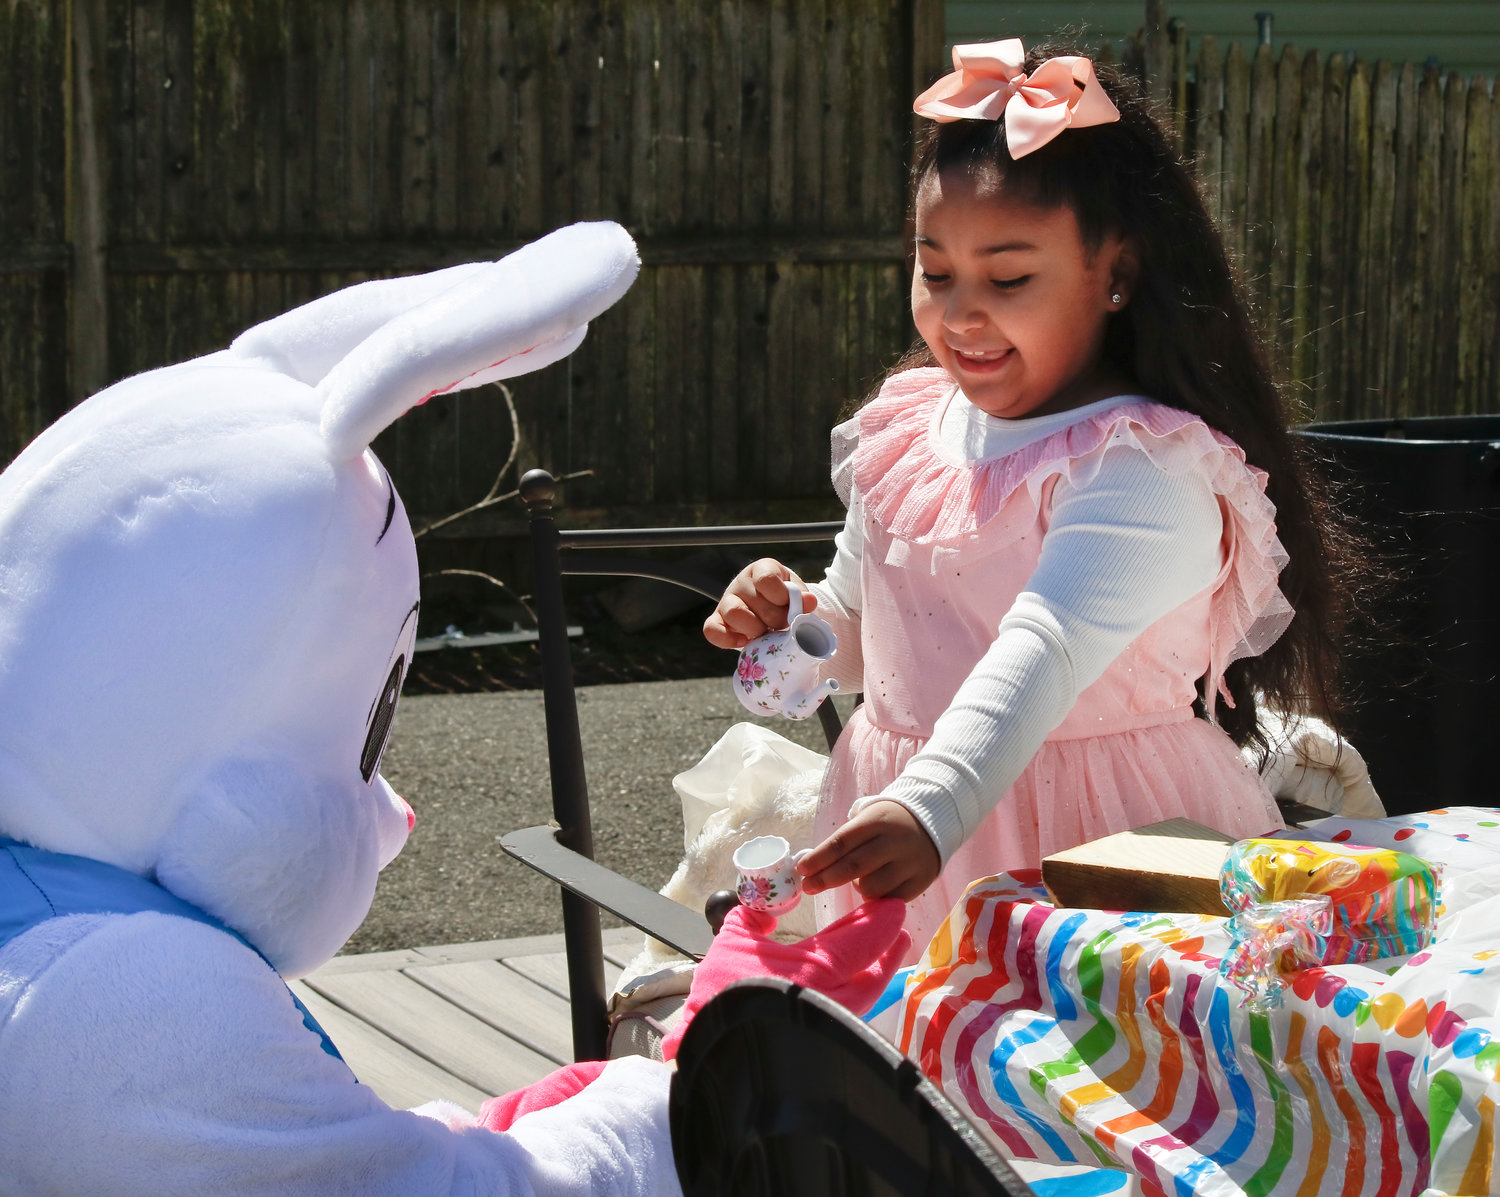 The Easter bunny visited Raylee Dean, 7, of Levittown, to have a tea party on April 3.